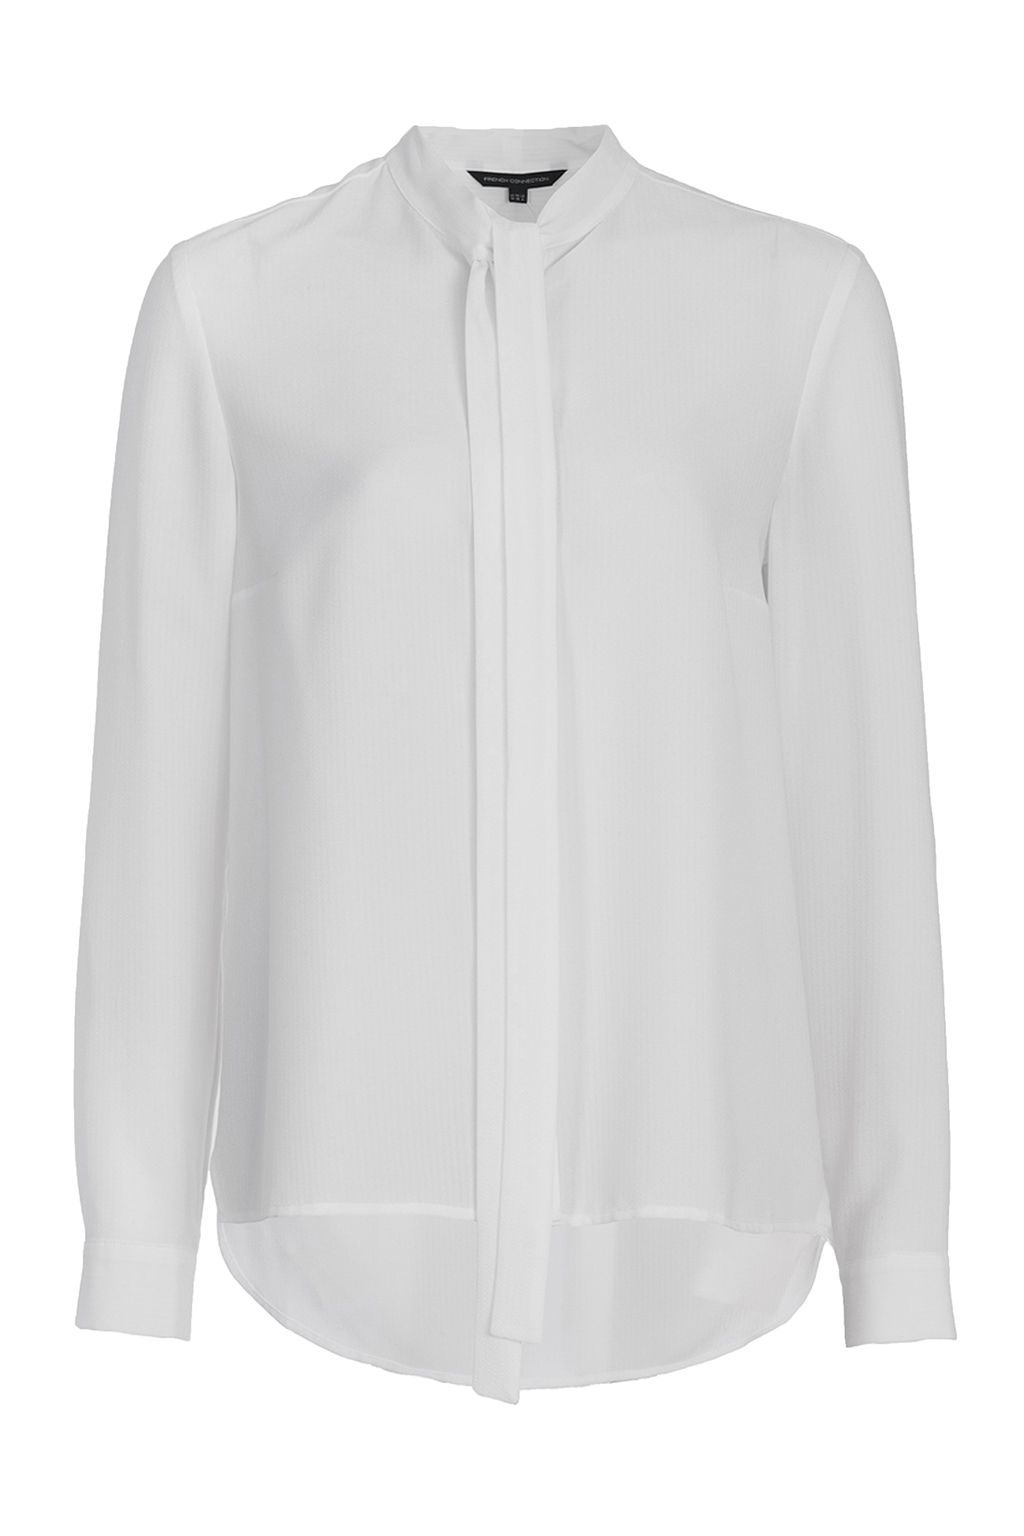 French Connection Pippa Plains Tie Neck Shirt, White